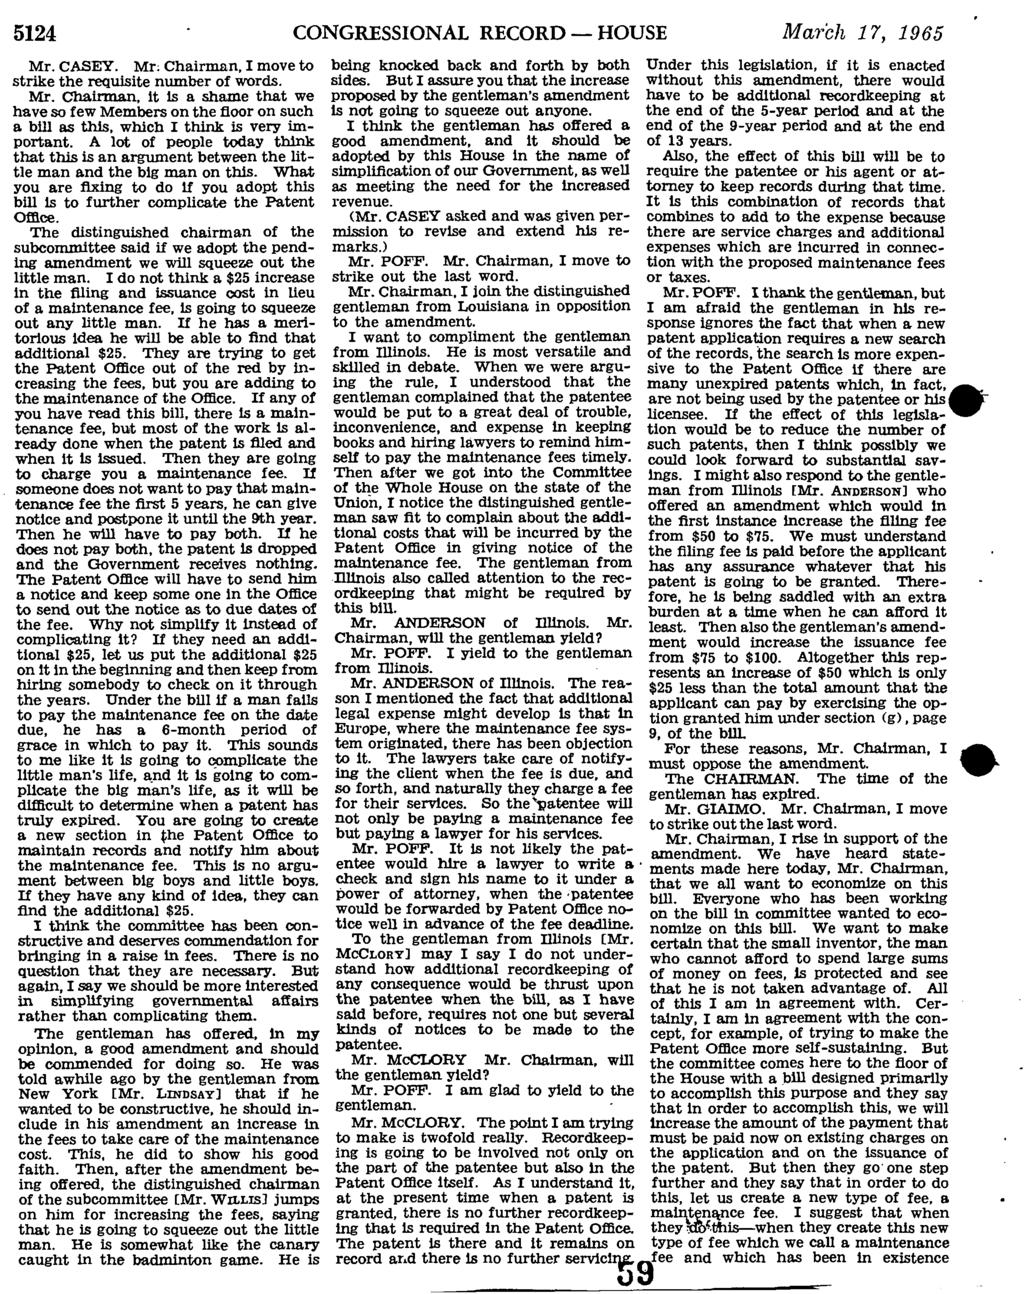 5124 CONGRESSIONAL RECORD HOUSE March 17, 1965 Mr. CASEY. Mr: Chairman, I move to being knocked back and forth by both strike the requisite number of words. sides.